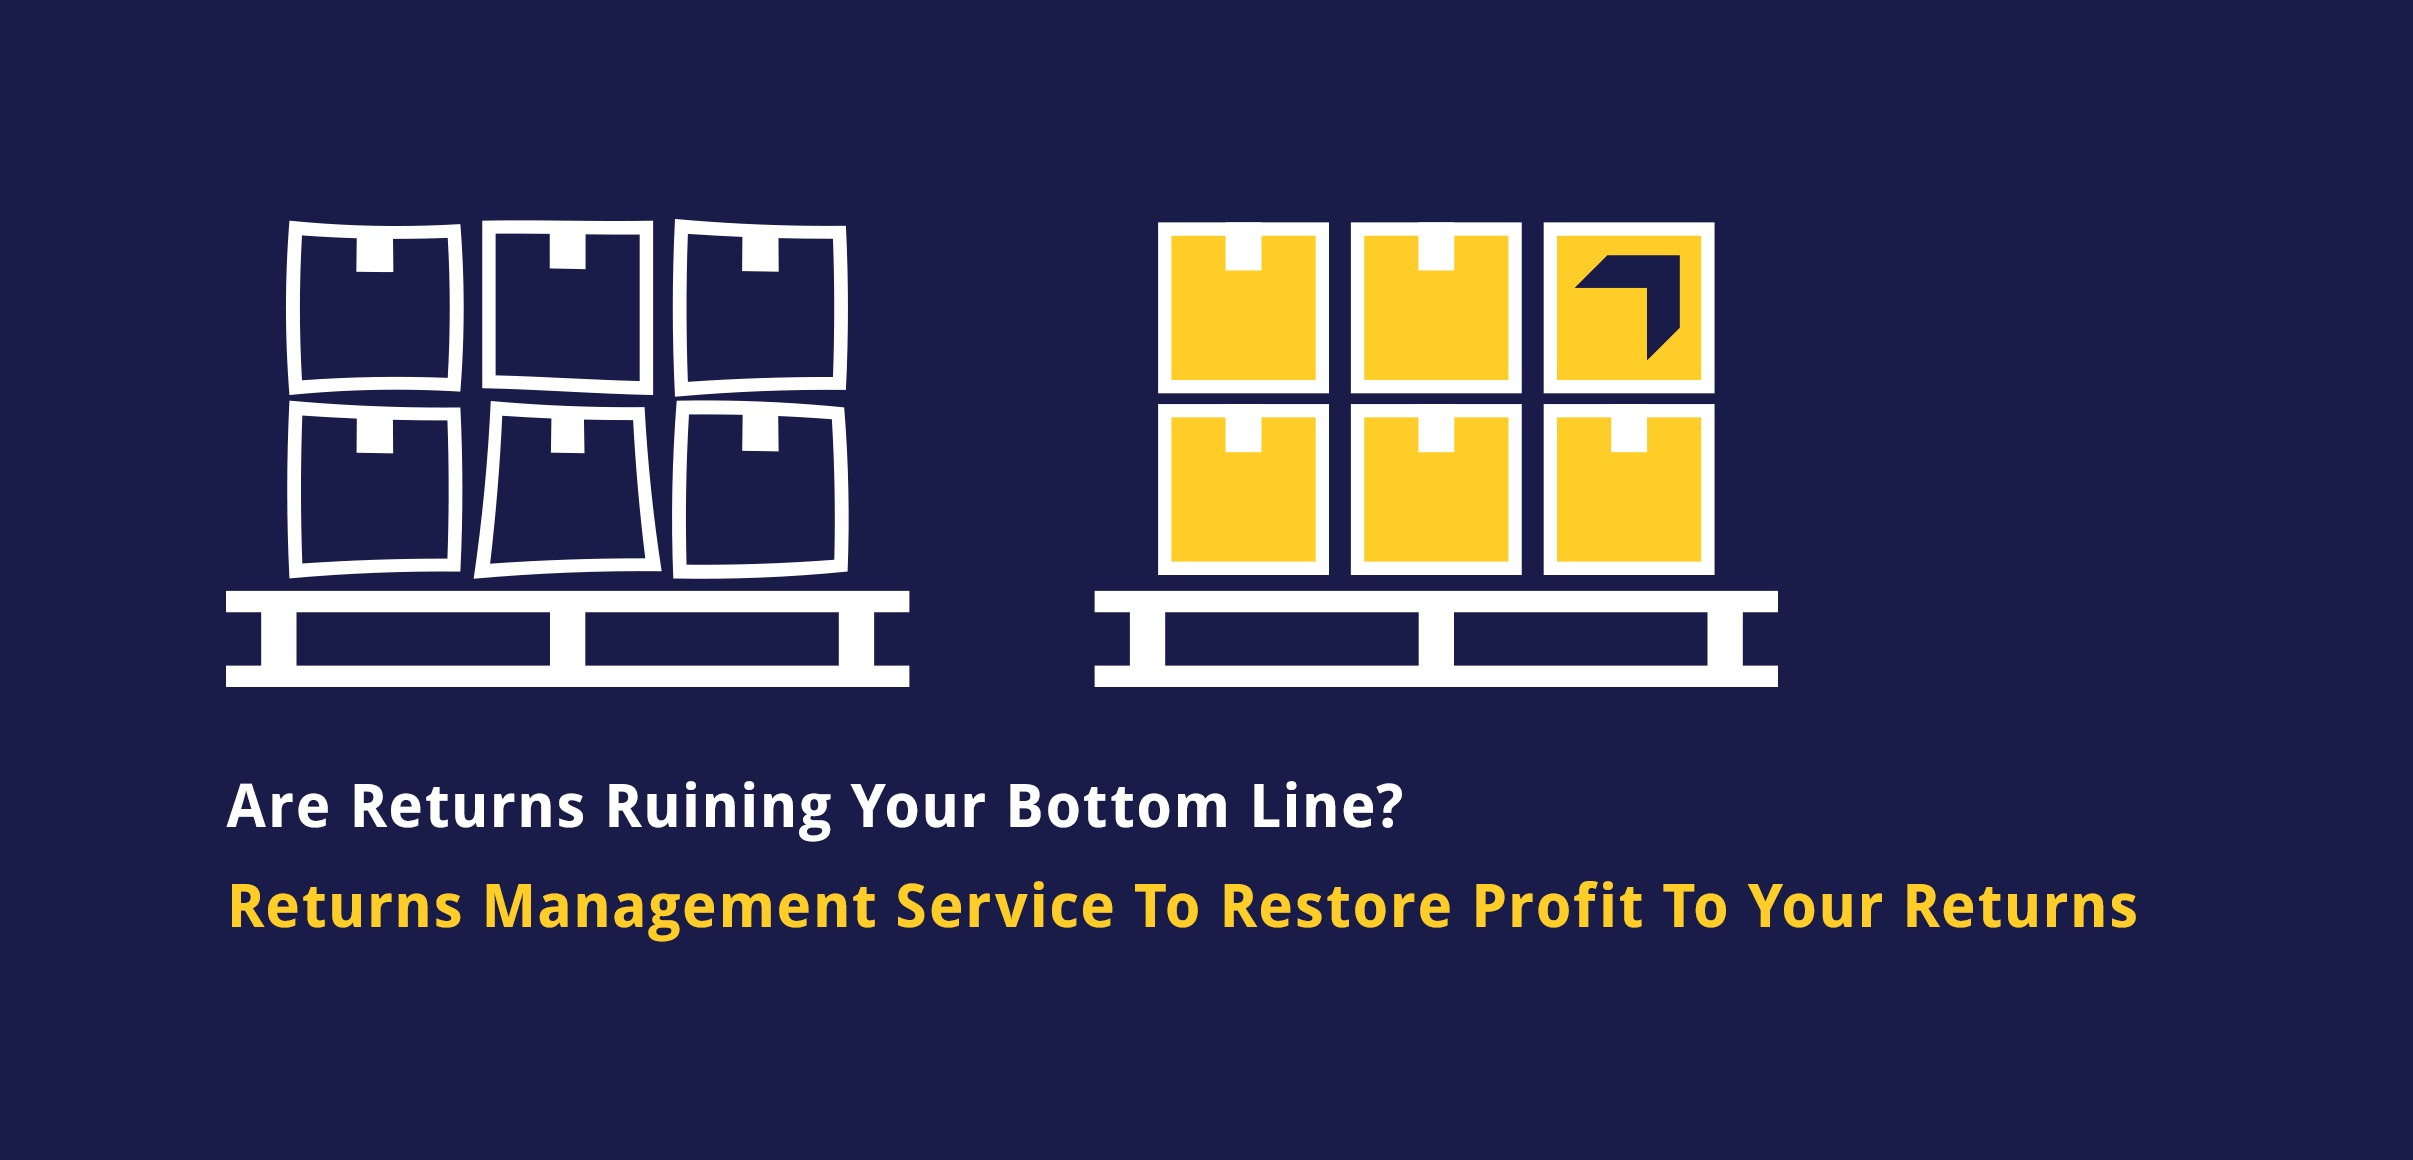 Ribble Restore, Returns Management